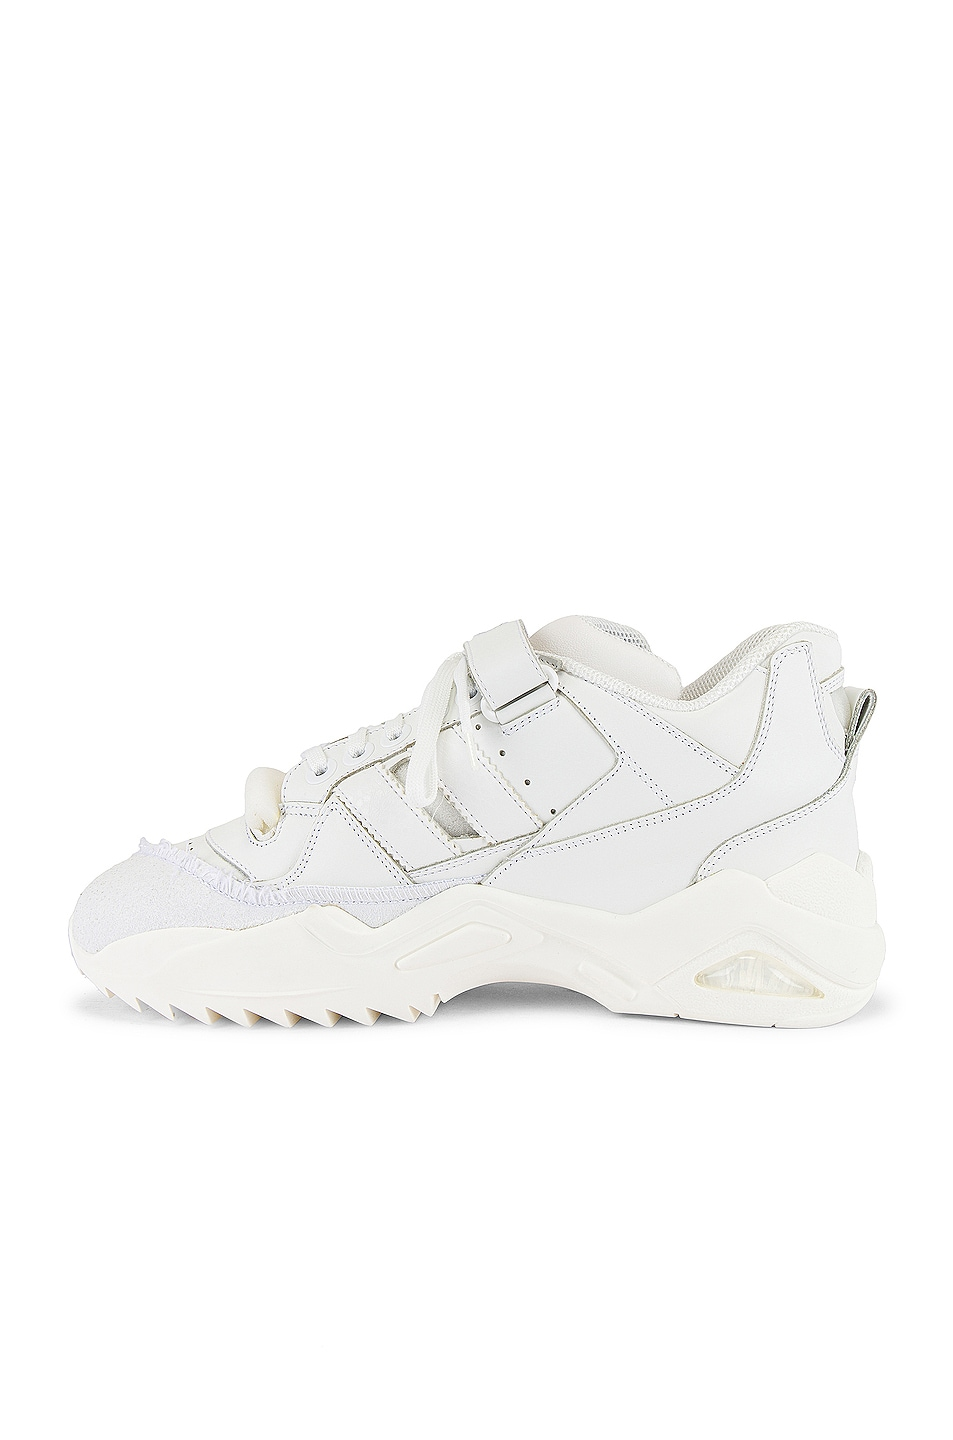 Image 5 of Maison Margiela Retro Fit Midi Sneaker in White